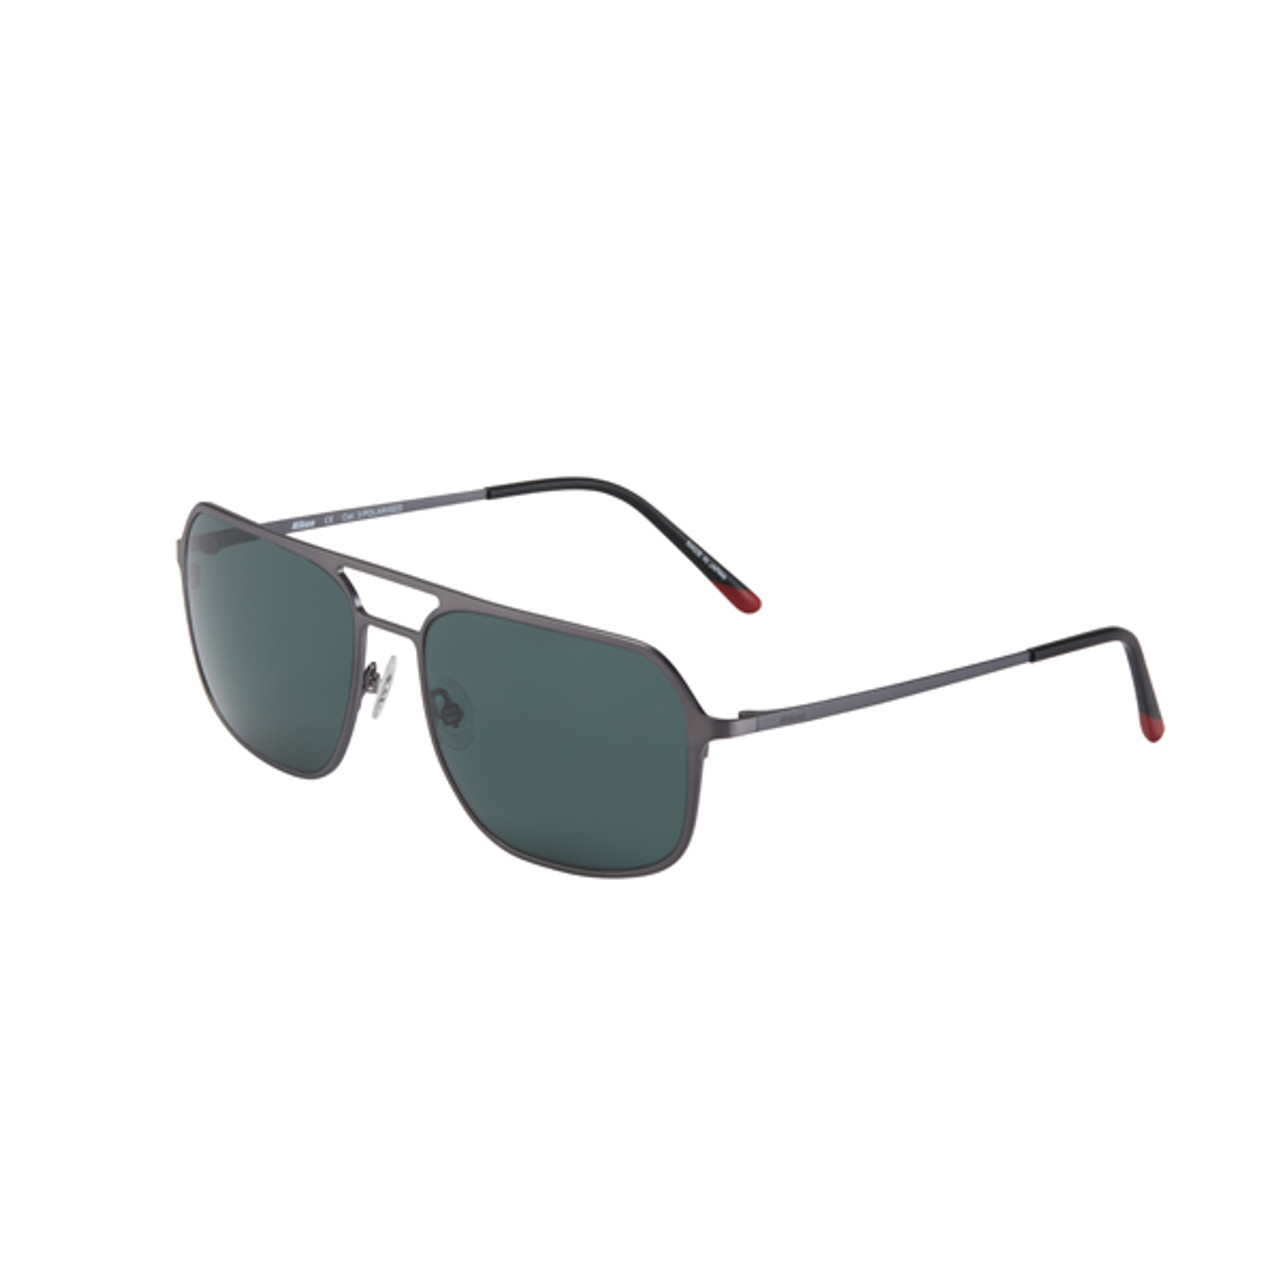 Nikon NC1003S Brushed Anthracite frame/Green Polarized lens